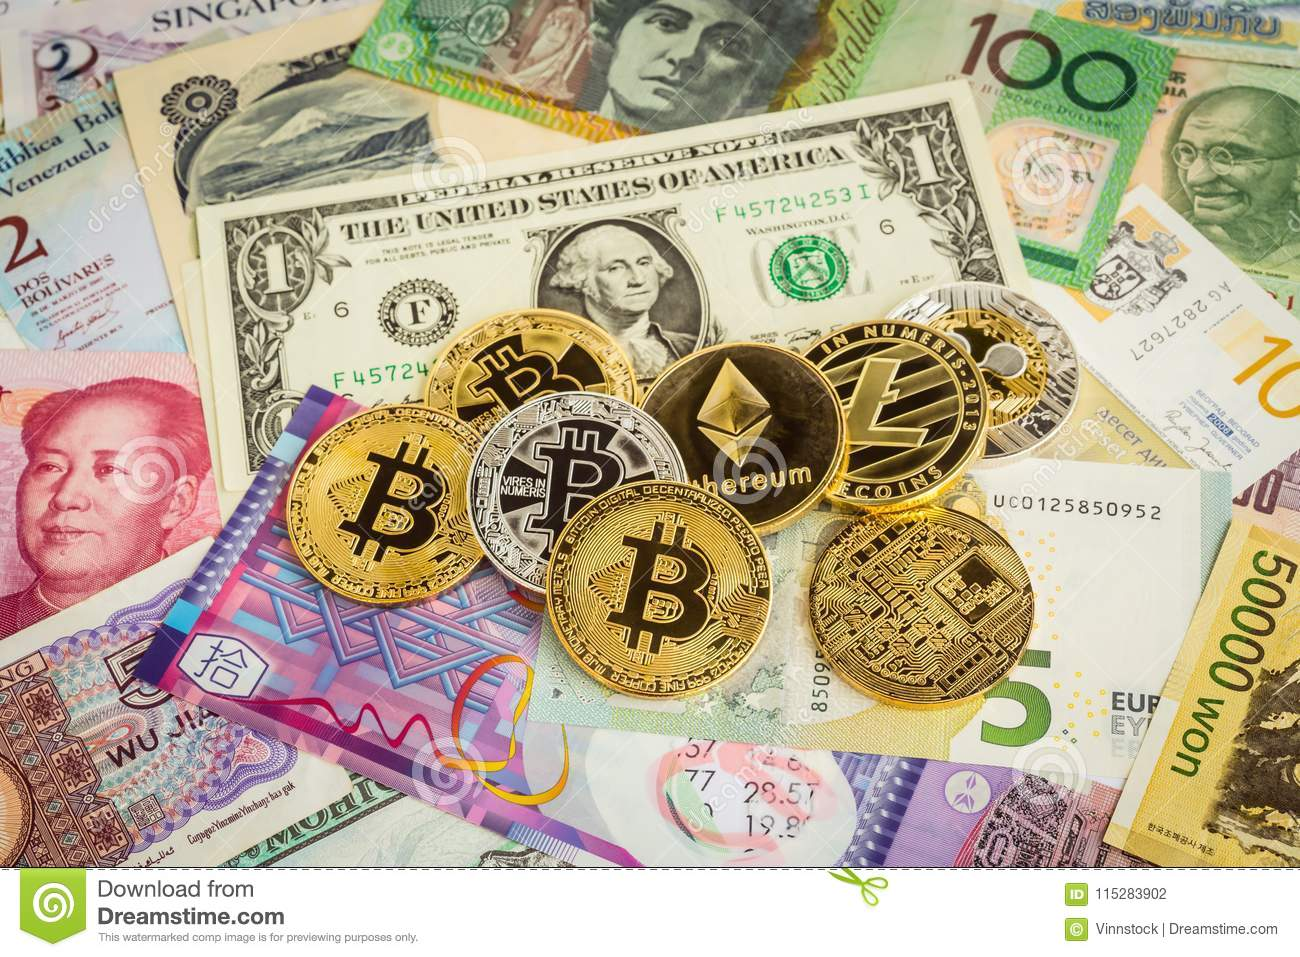 how to transfer cryptocurrency to cash